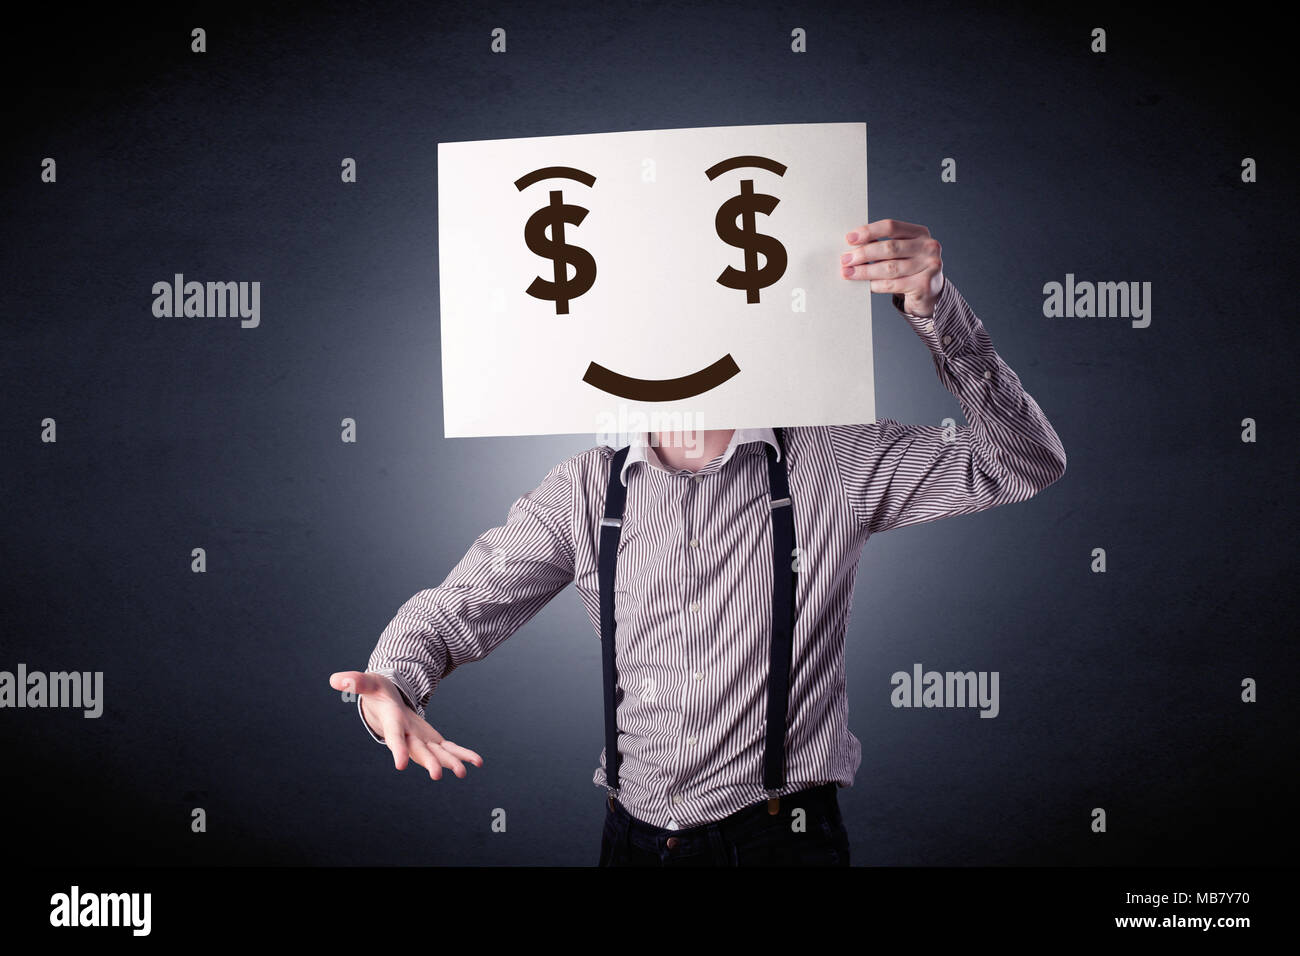 Young casual businessman hiding behind a greedy face drawing on cardboard - Stock Image